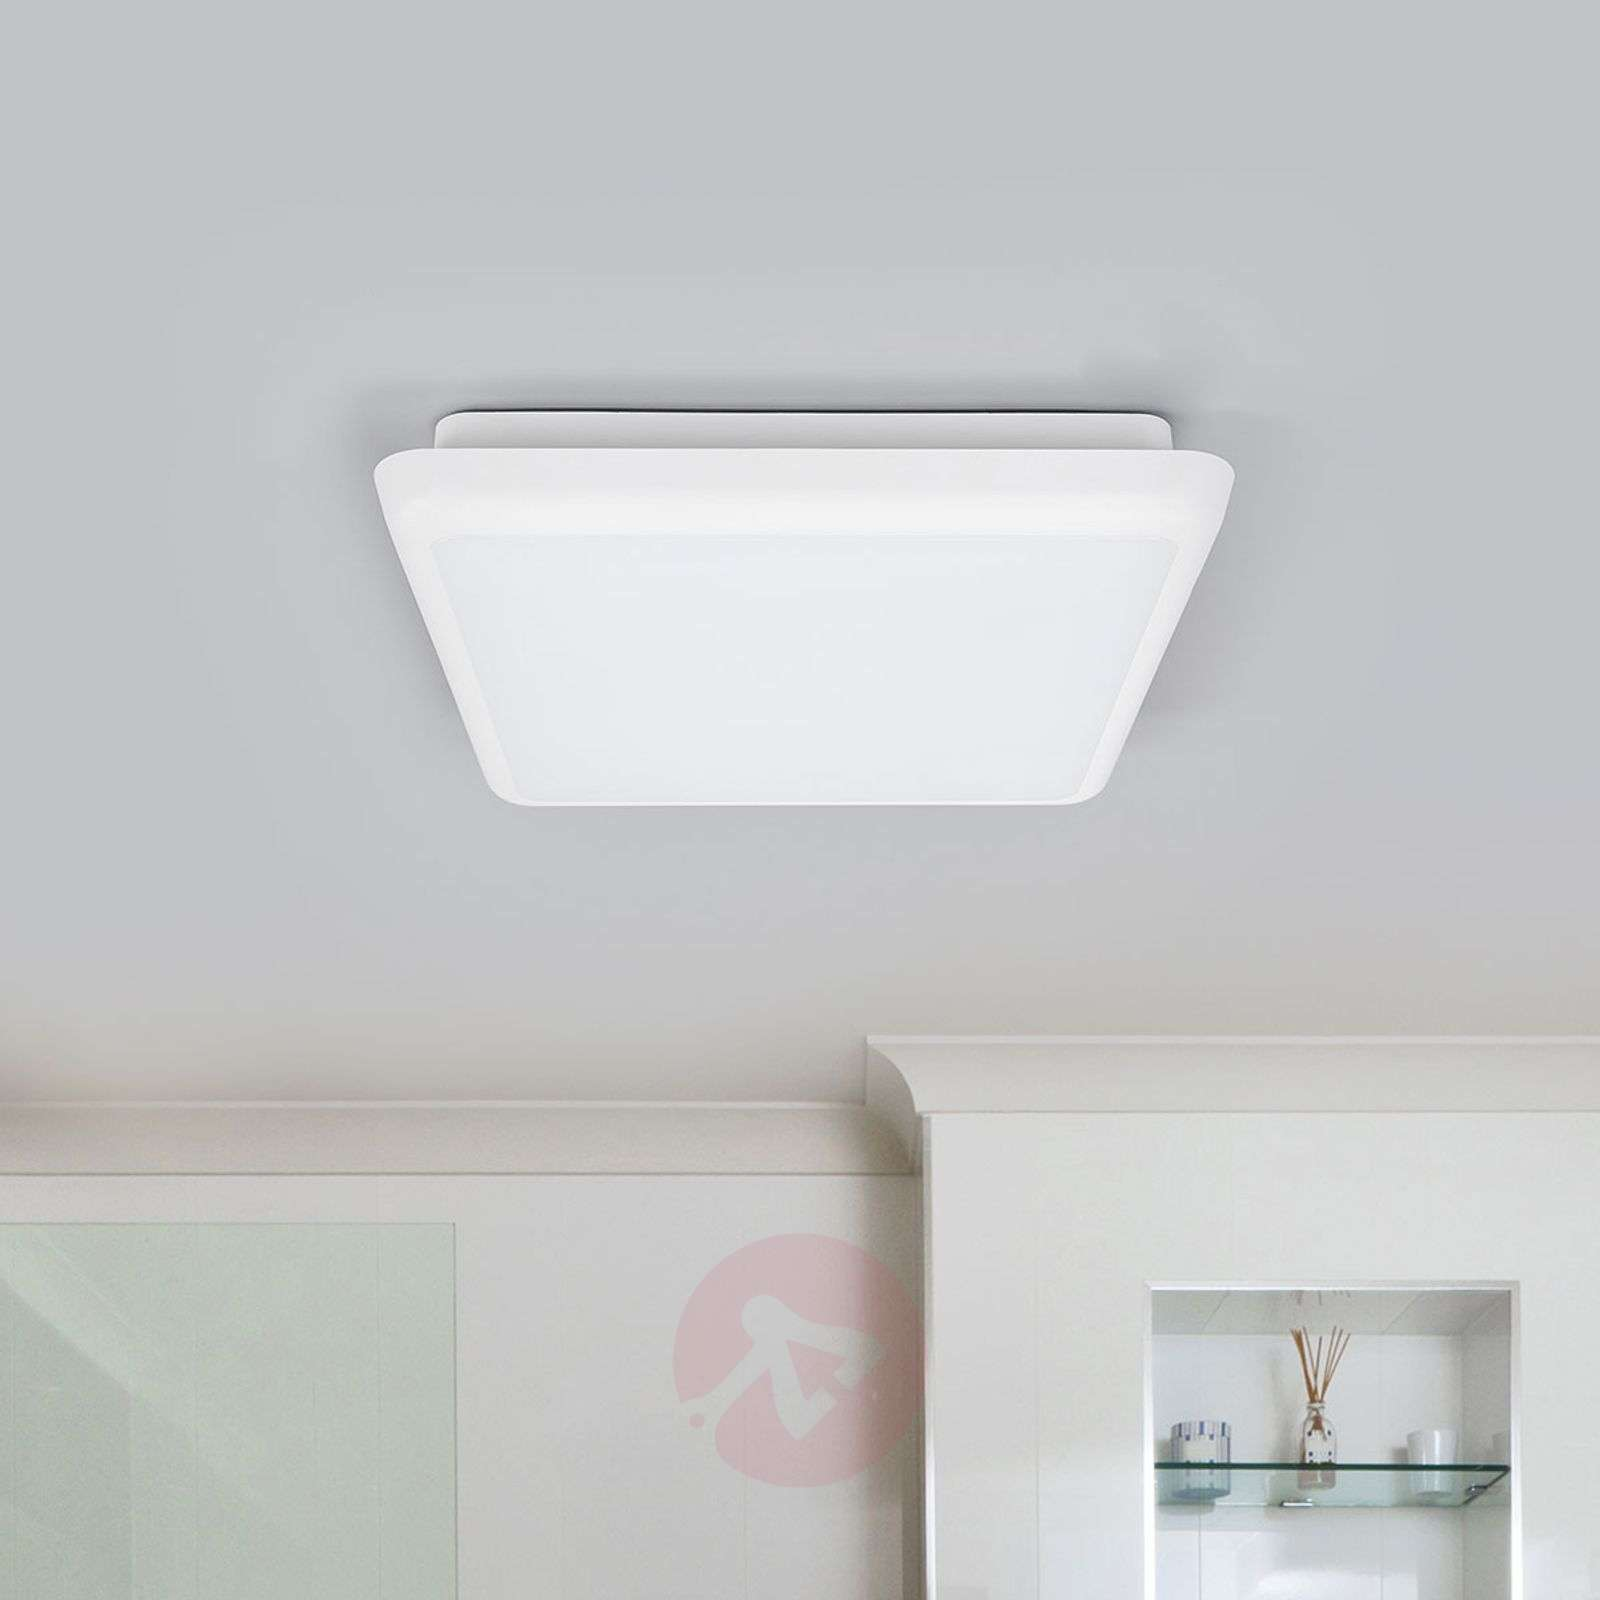 Square LED ceiling lamp Augustin, 25 cm-9967010-01